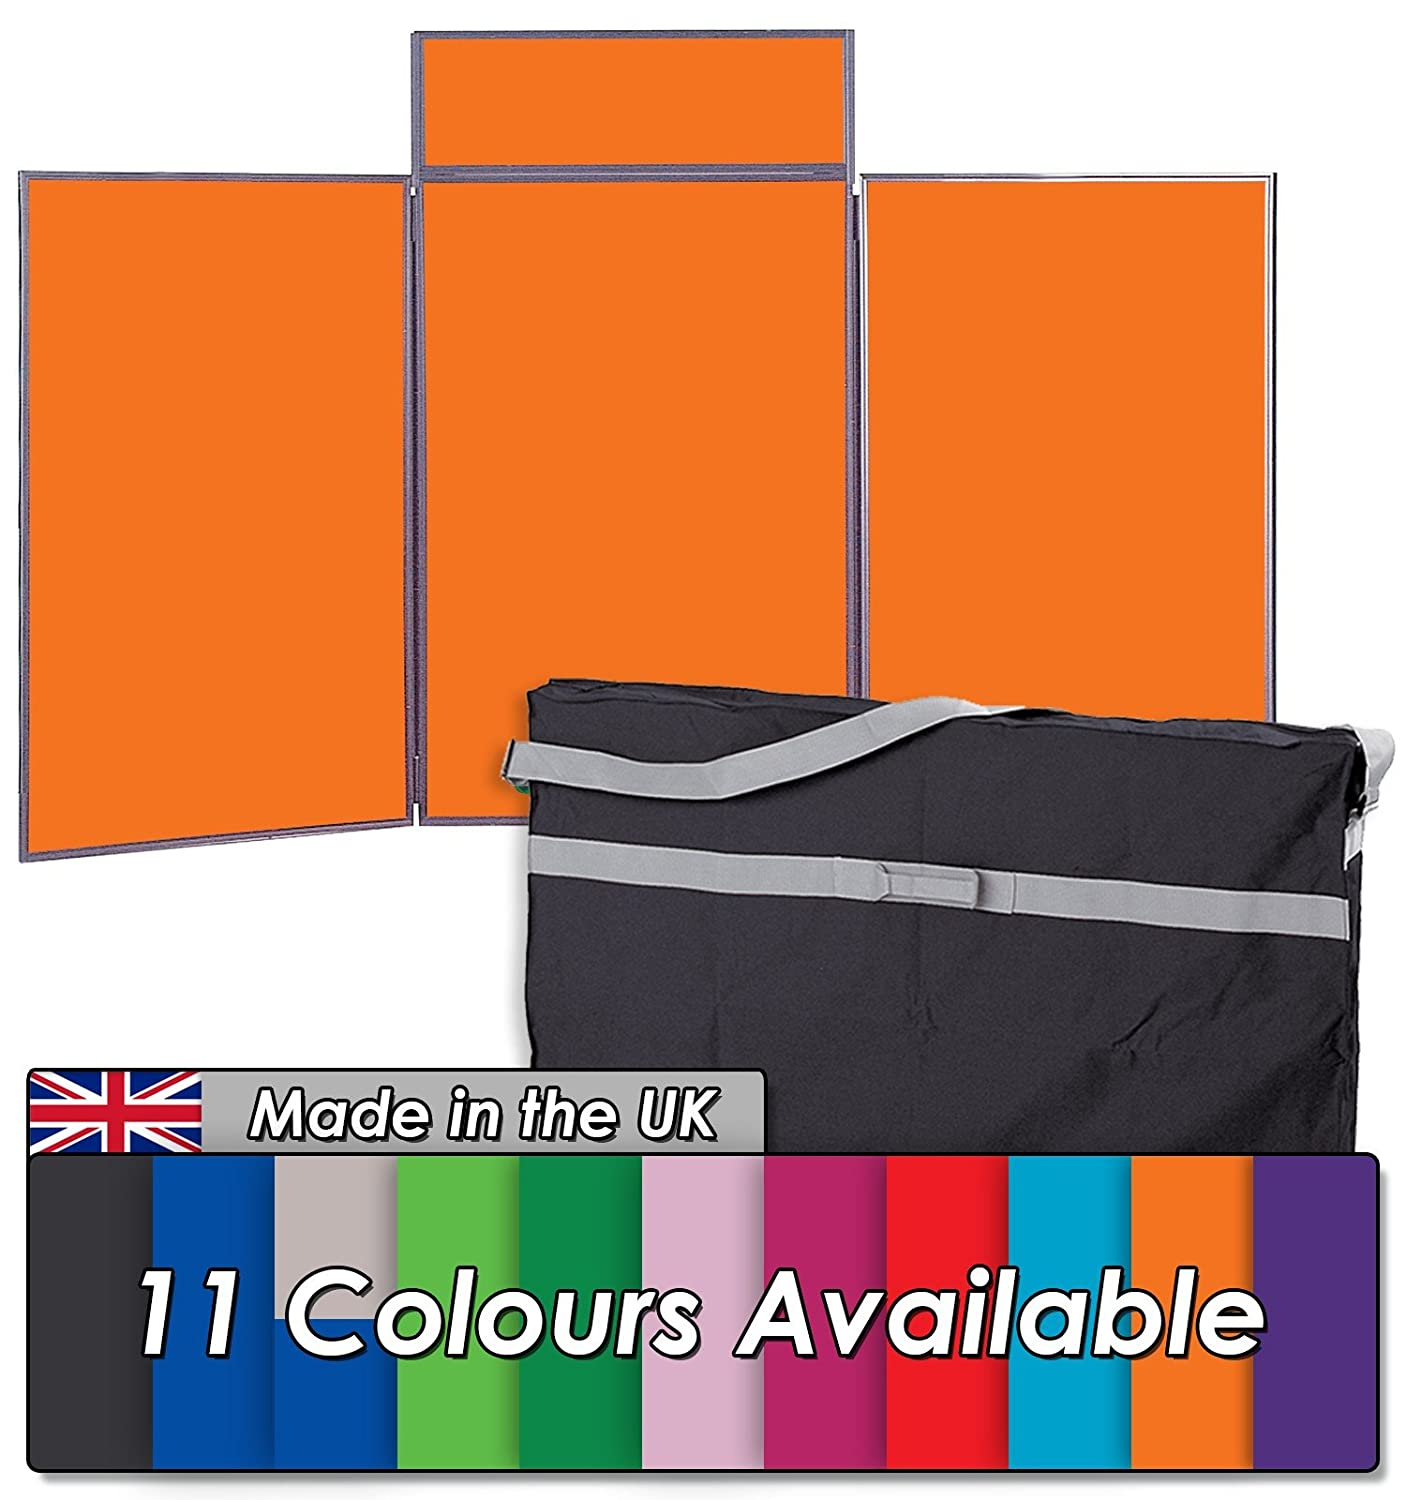 Offices Black with Grey Frame 11 Colours Exhibitions For Schools Tabletop Display Kit 3 Large Panels with Bag /& Header